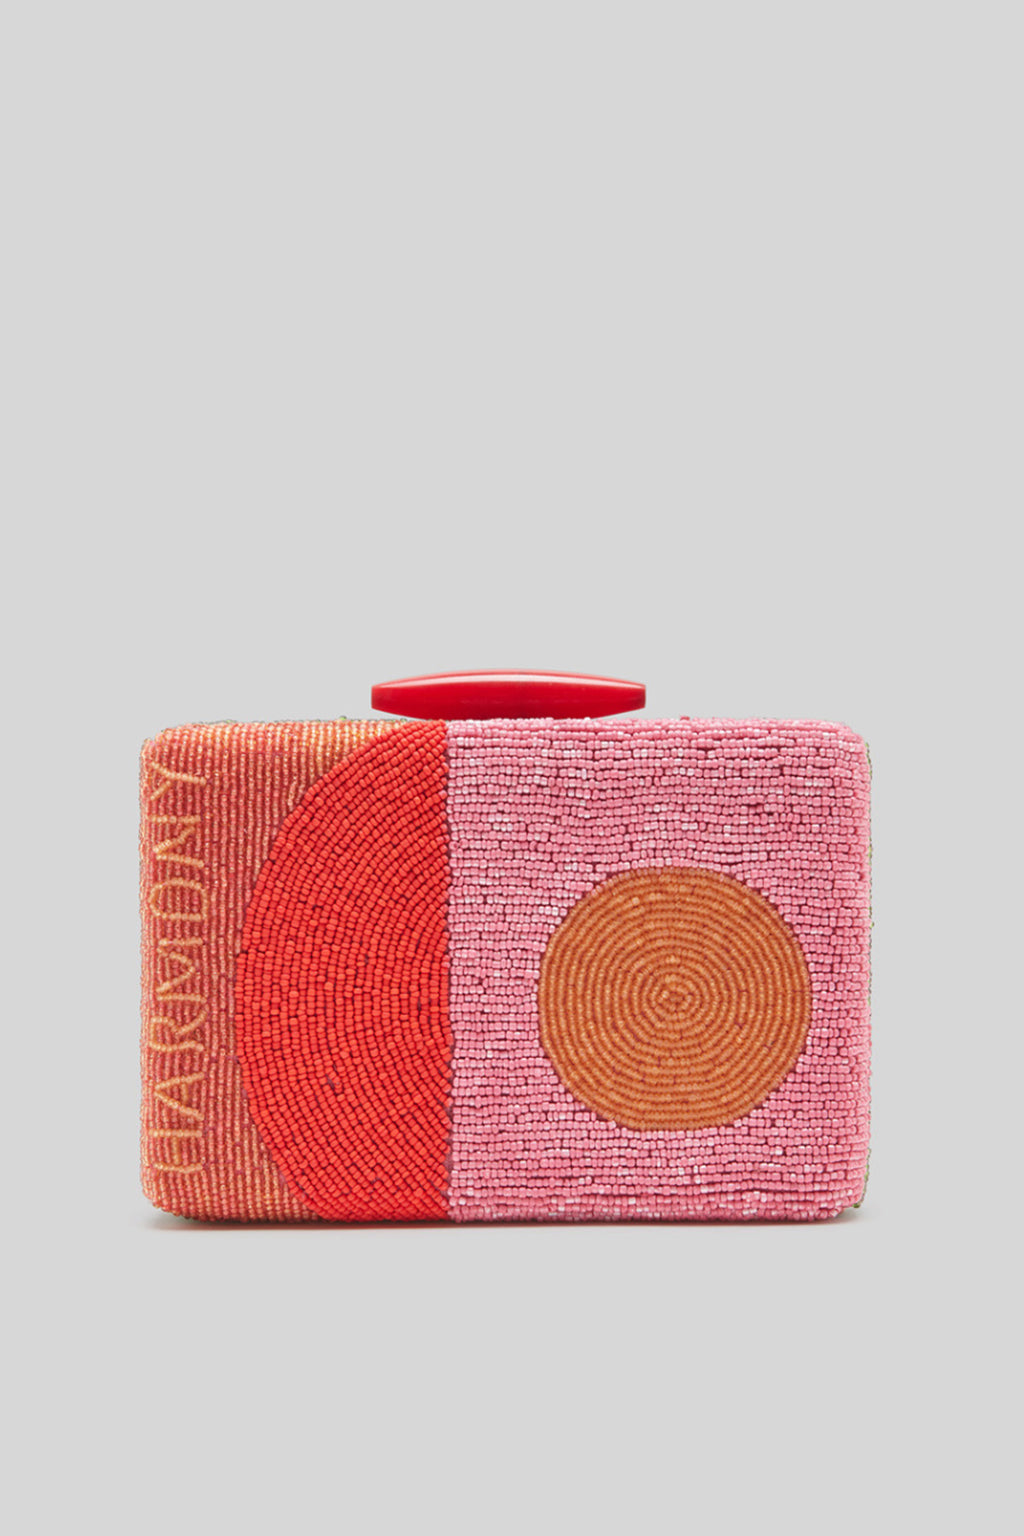 Maliparmi Handbeaded Harmony Clutch in Pink and Red